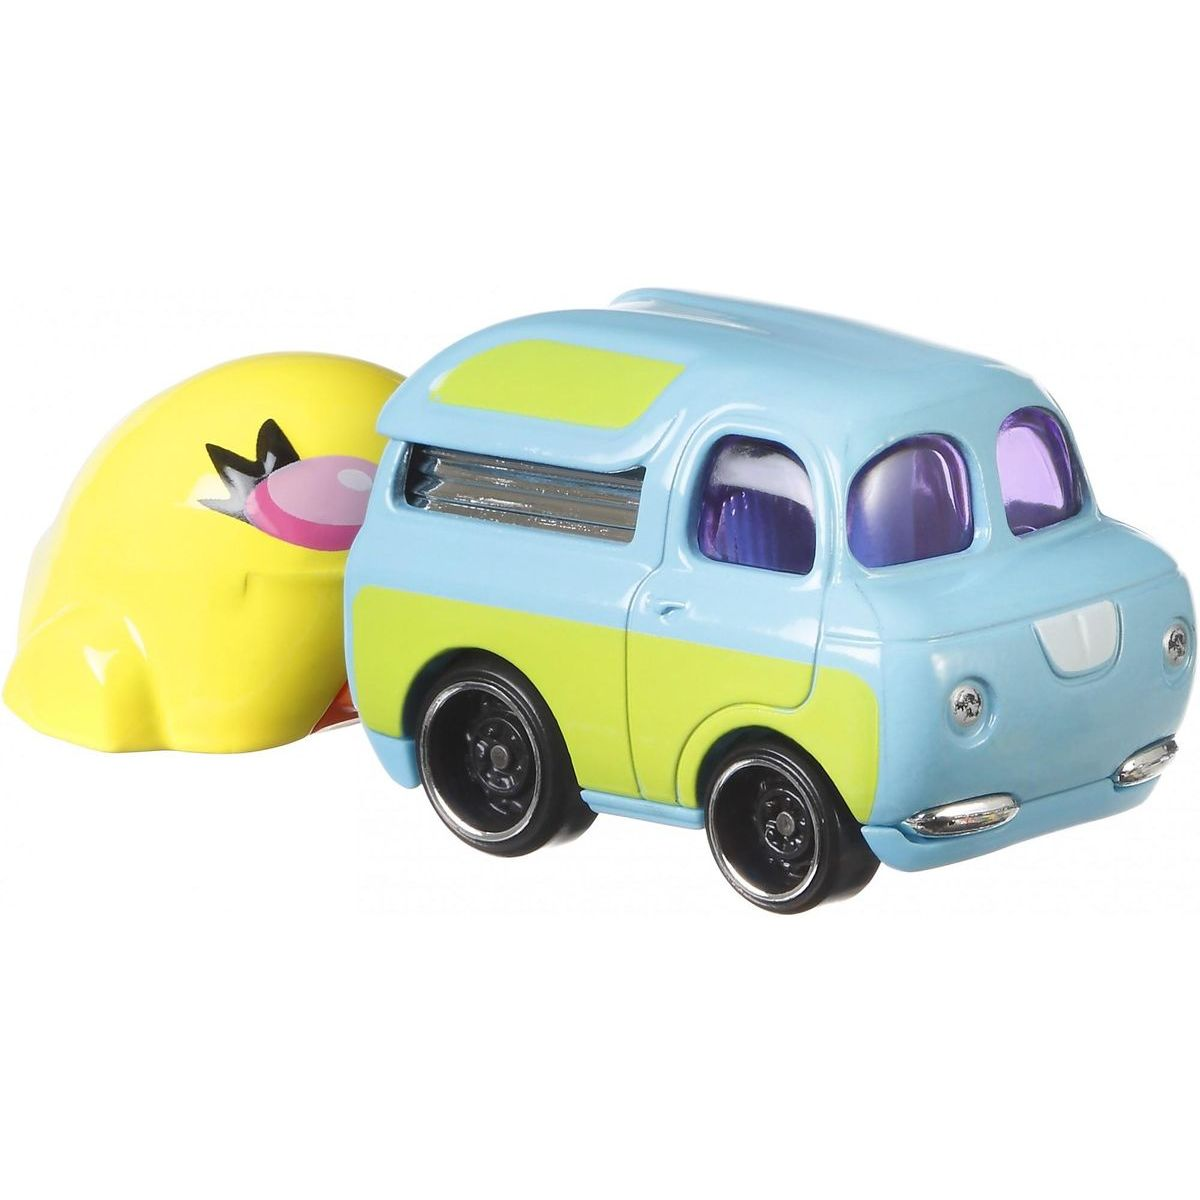 Hot Wheels tematické auto Toy story Ducky and Bunny